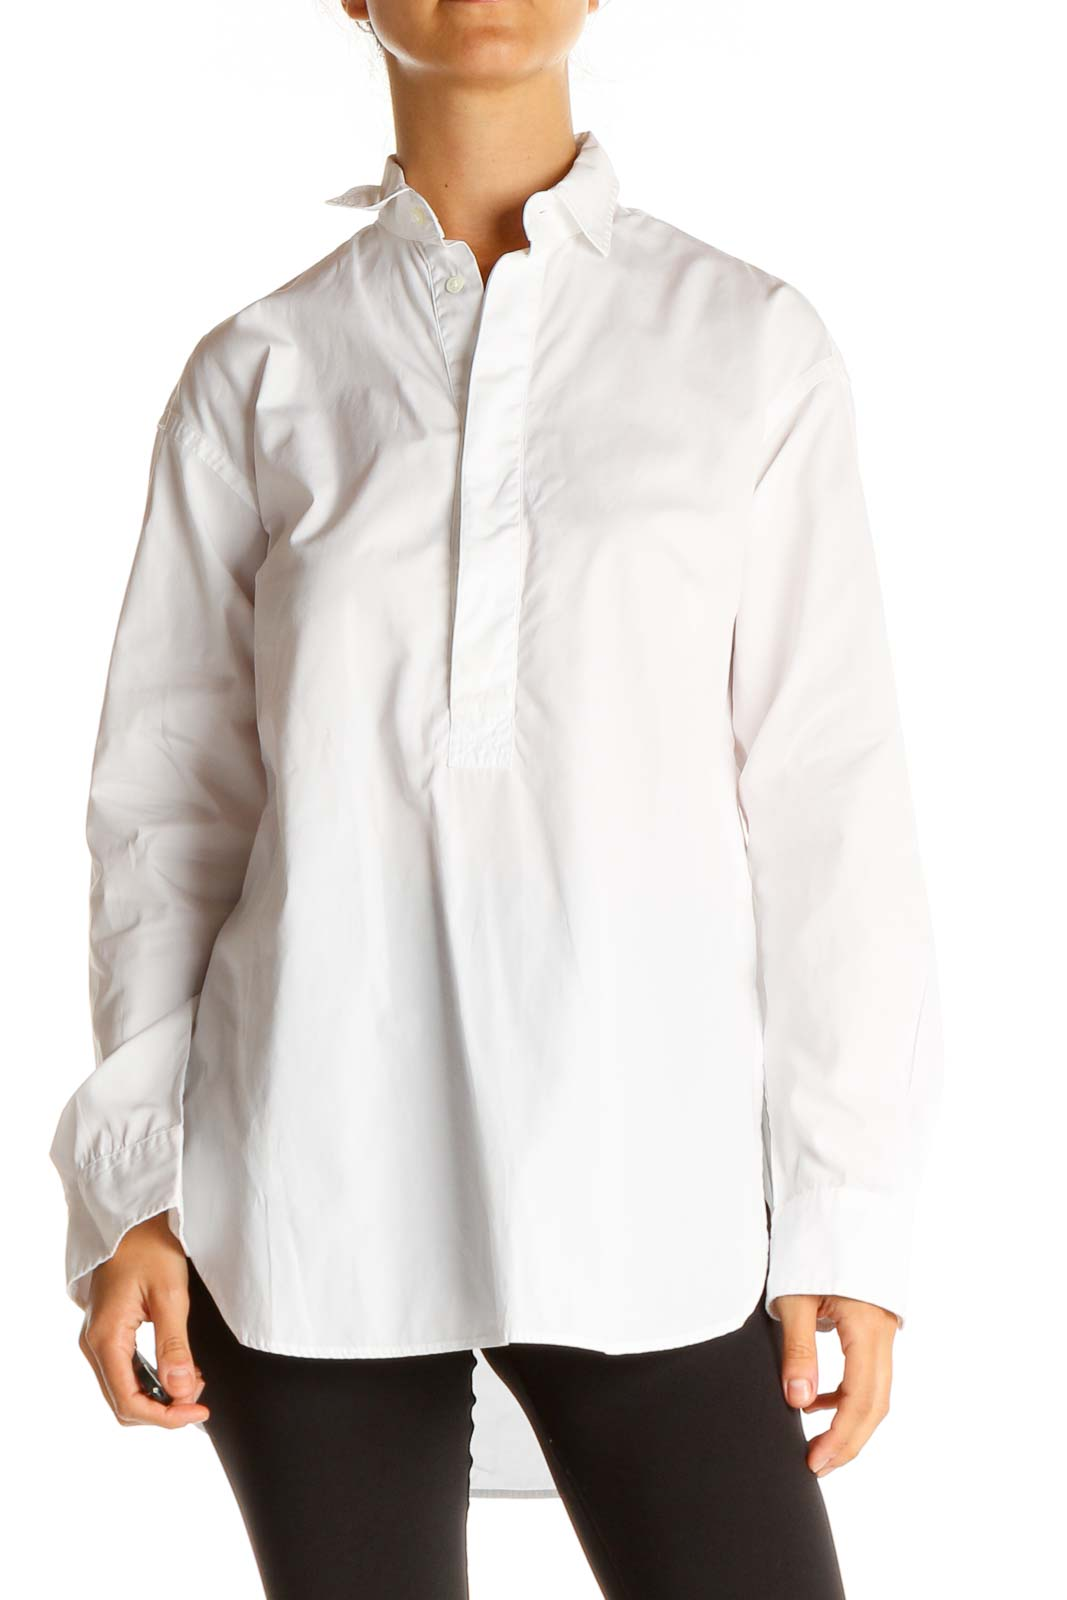 White Solid Classic Shirt Front